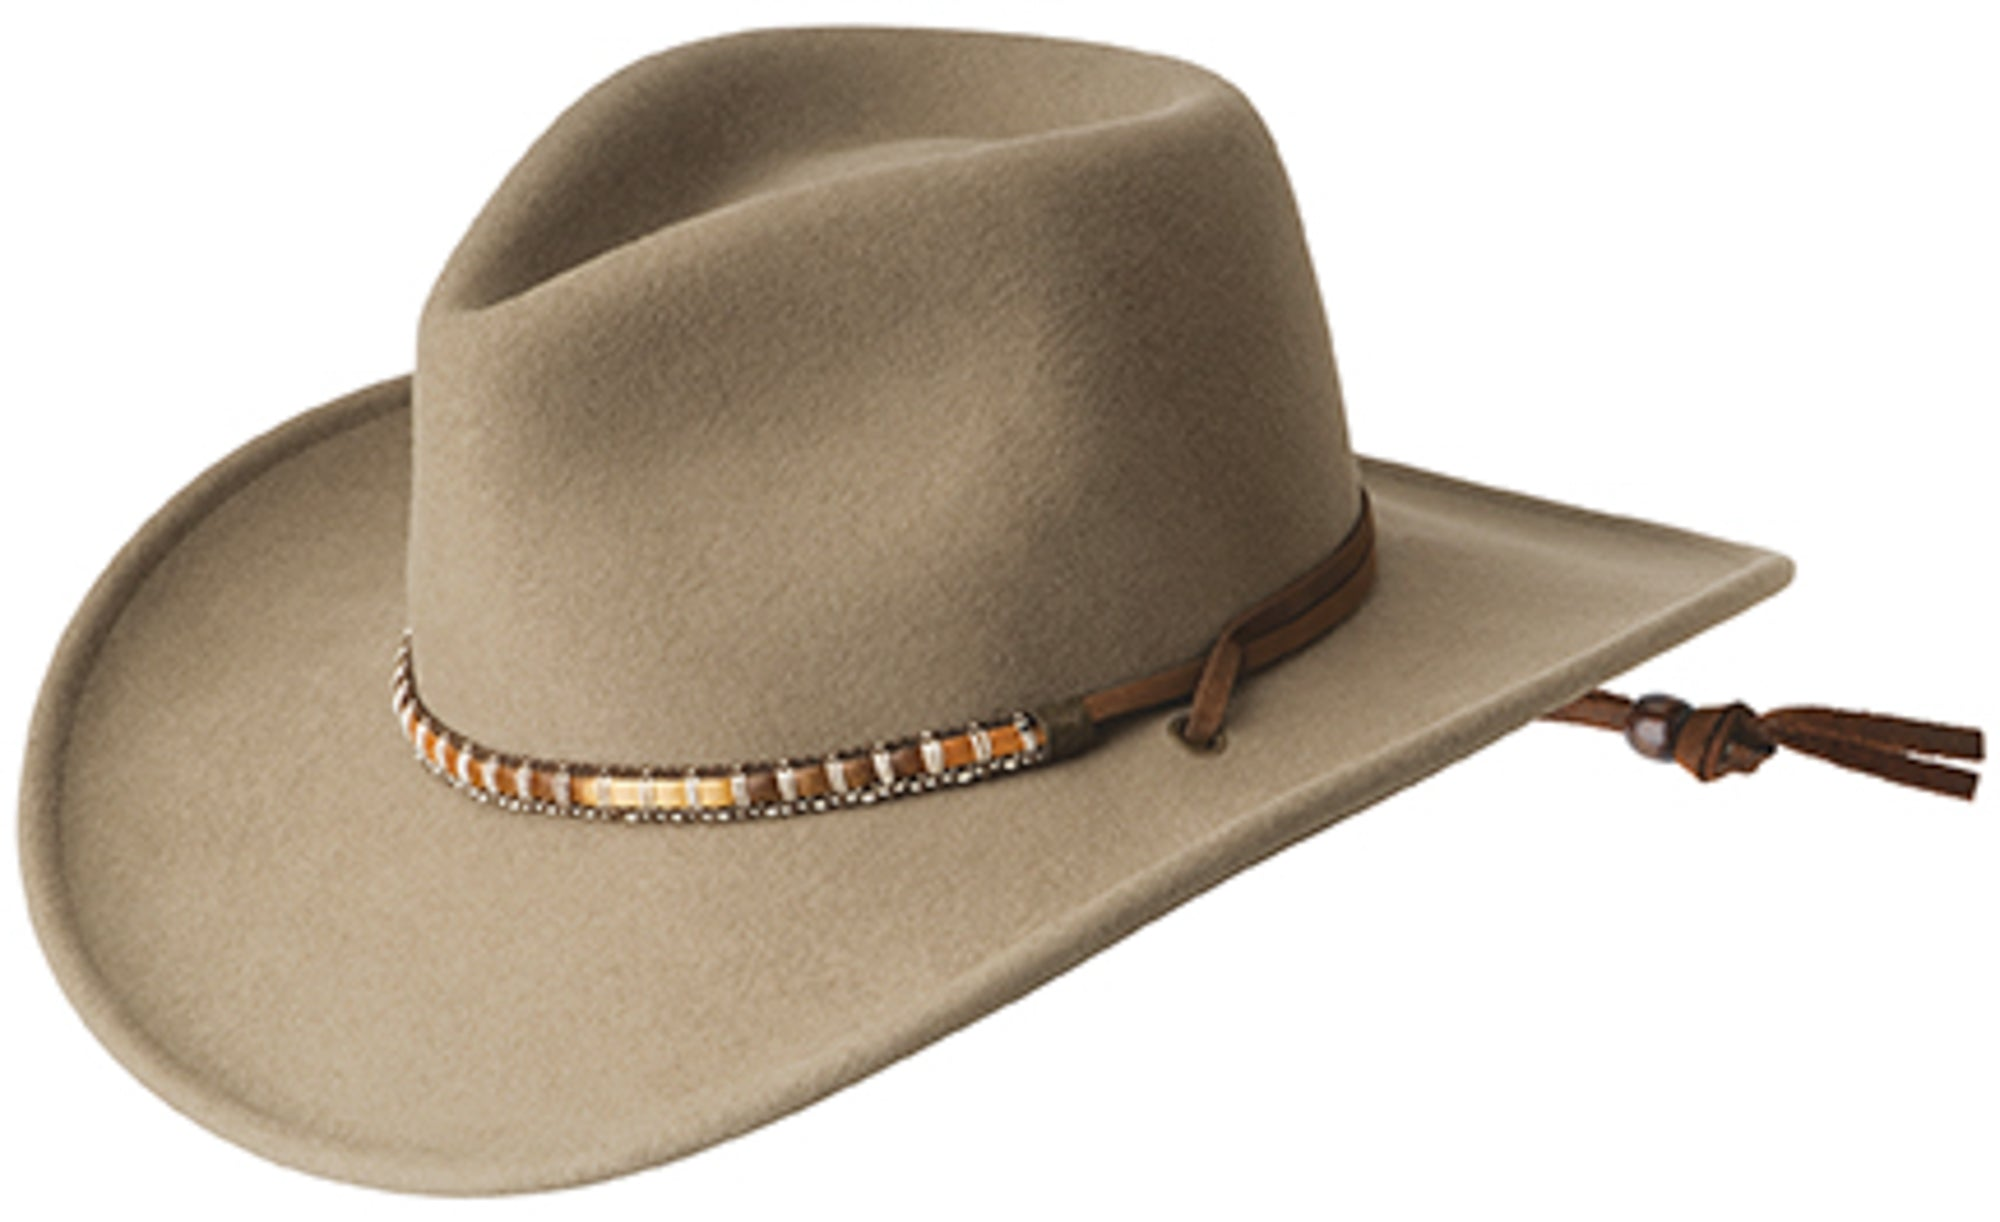 Bailey Columbia Putty Unisex Felt Western Hat Wind River Cassidy ... 662aab26ced7